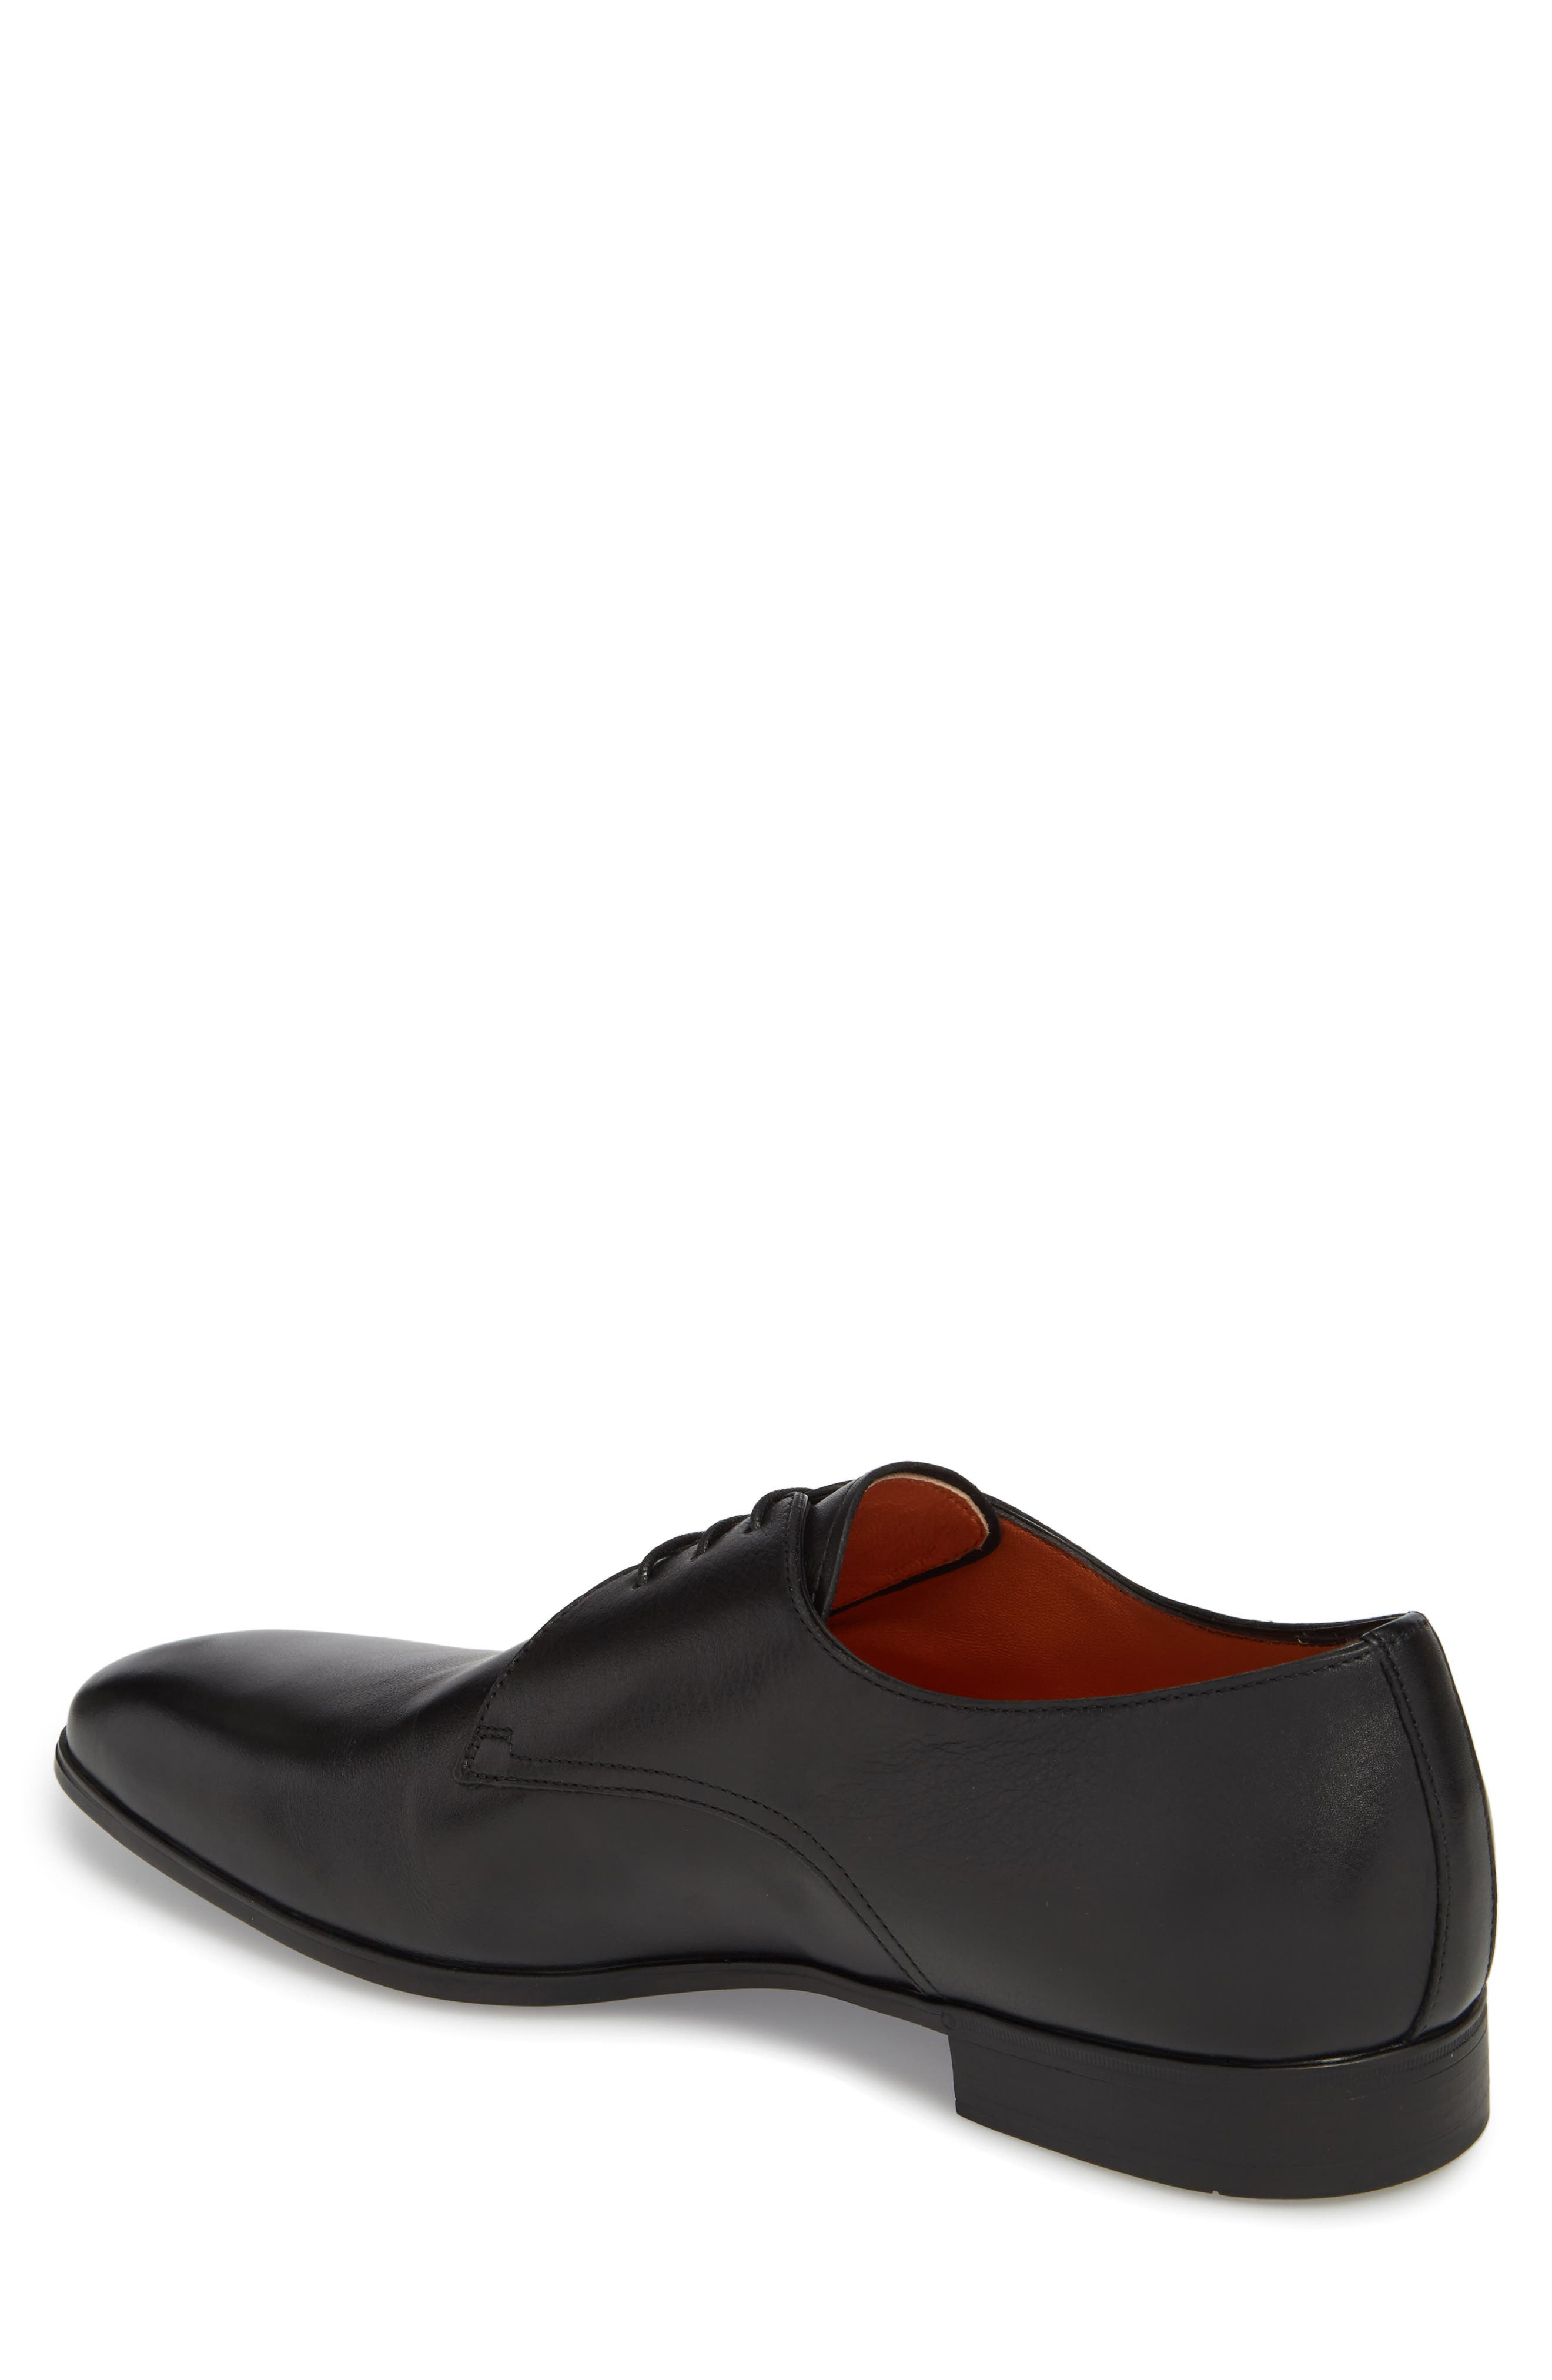 SANTONI,                             Glenn Plain Toe Derby,                             Alternate thumbnail 2, color,                             001